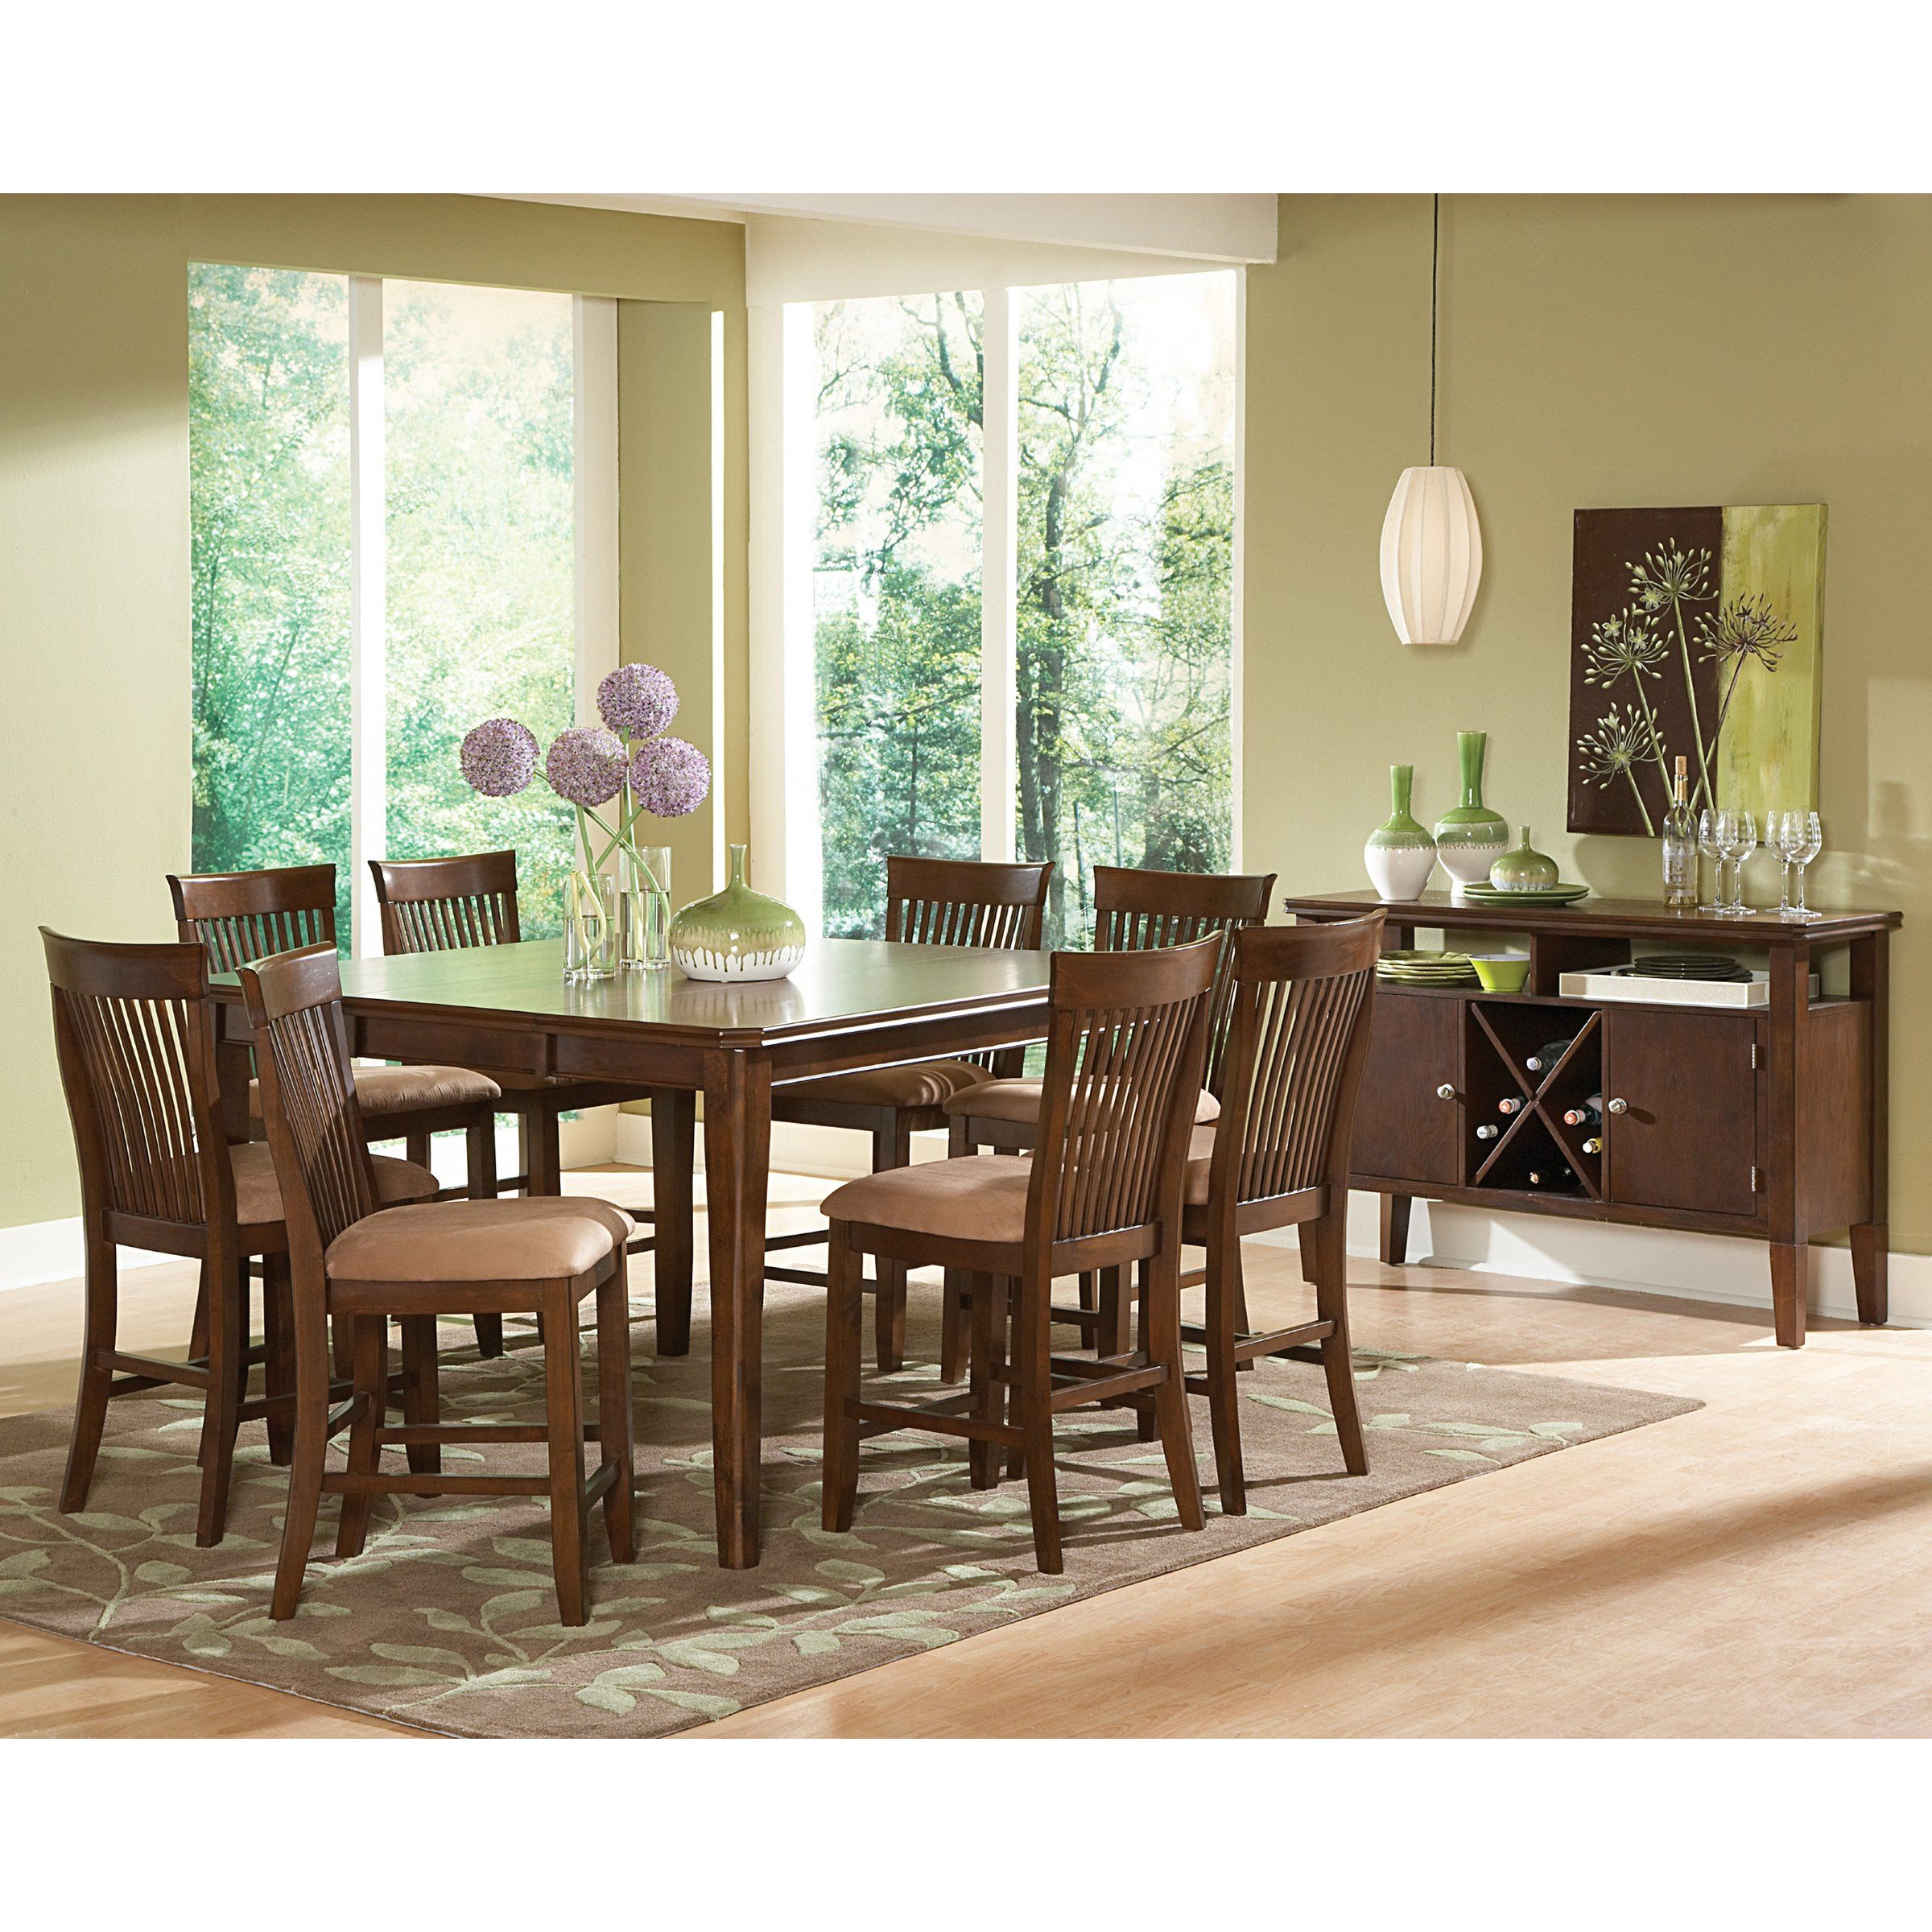 Steve Silver Montreal 9 Piece Counter Height Dining Set